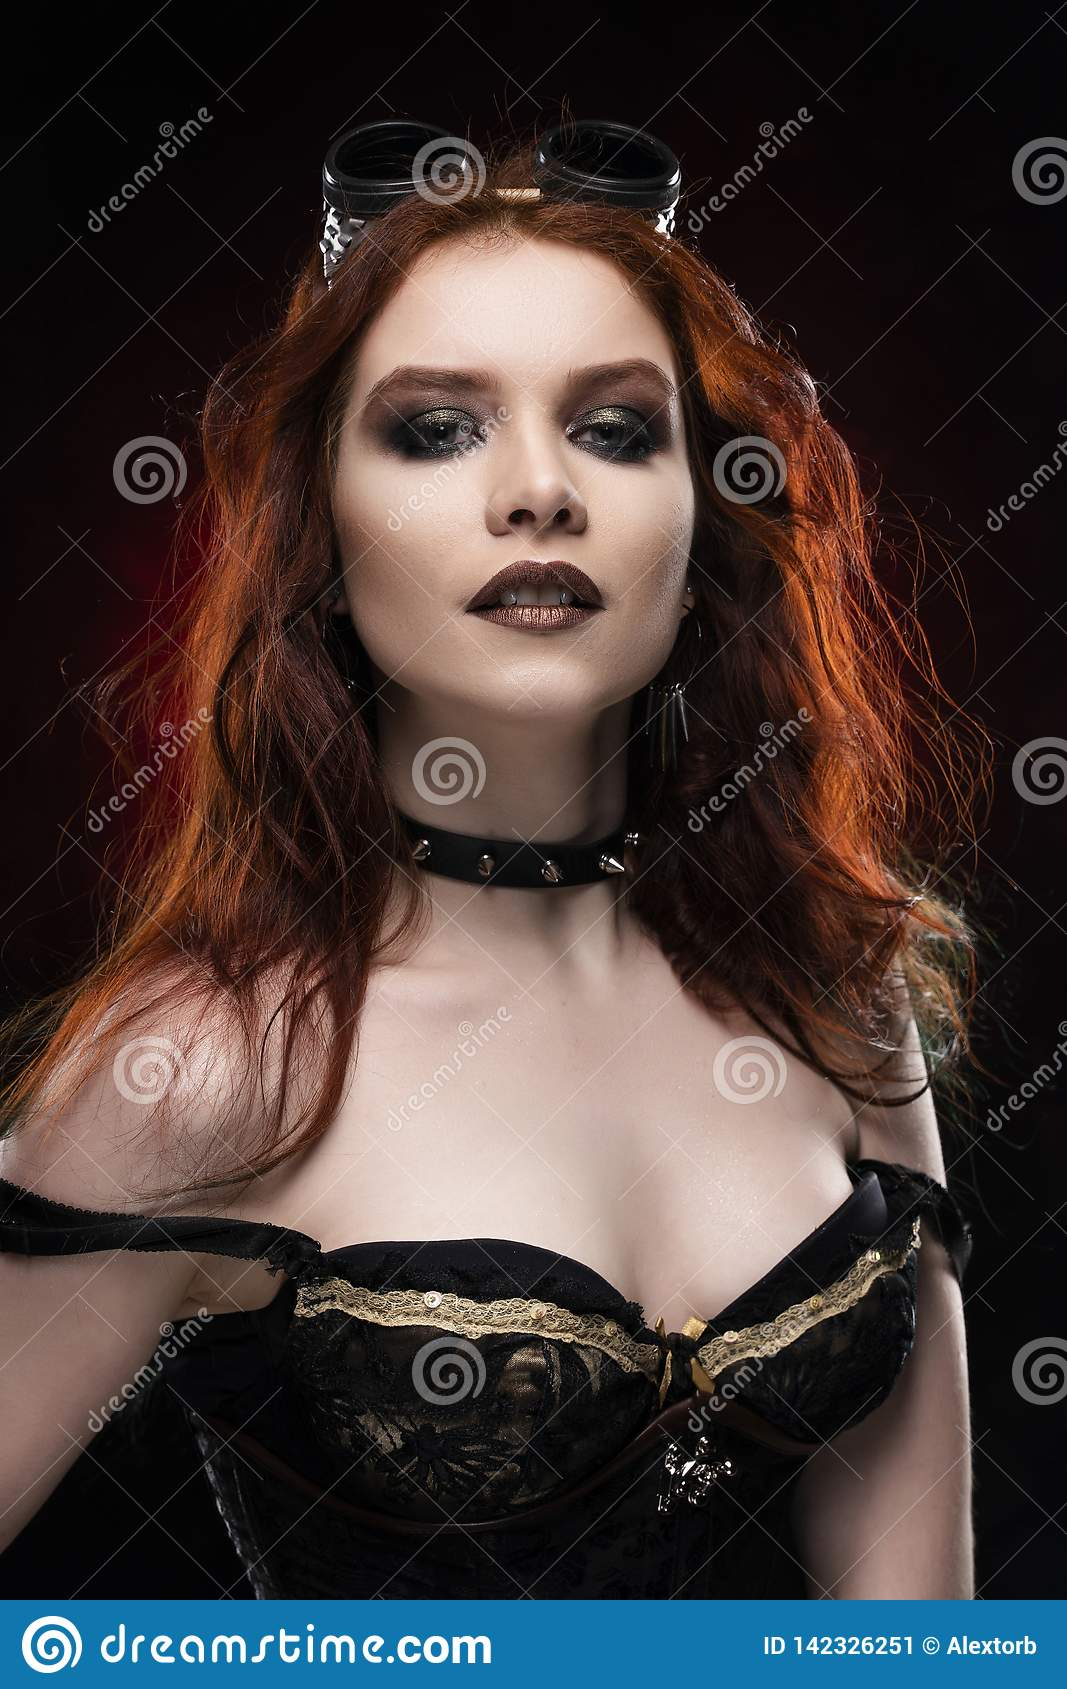 Beautiful smiling redhead cosplayer girl wearing a Victorian-style steampunk costume with a big breast in a deep neckline on red